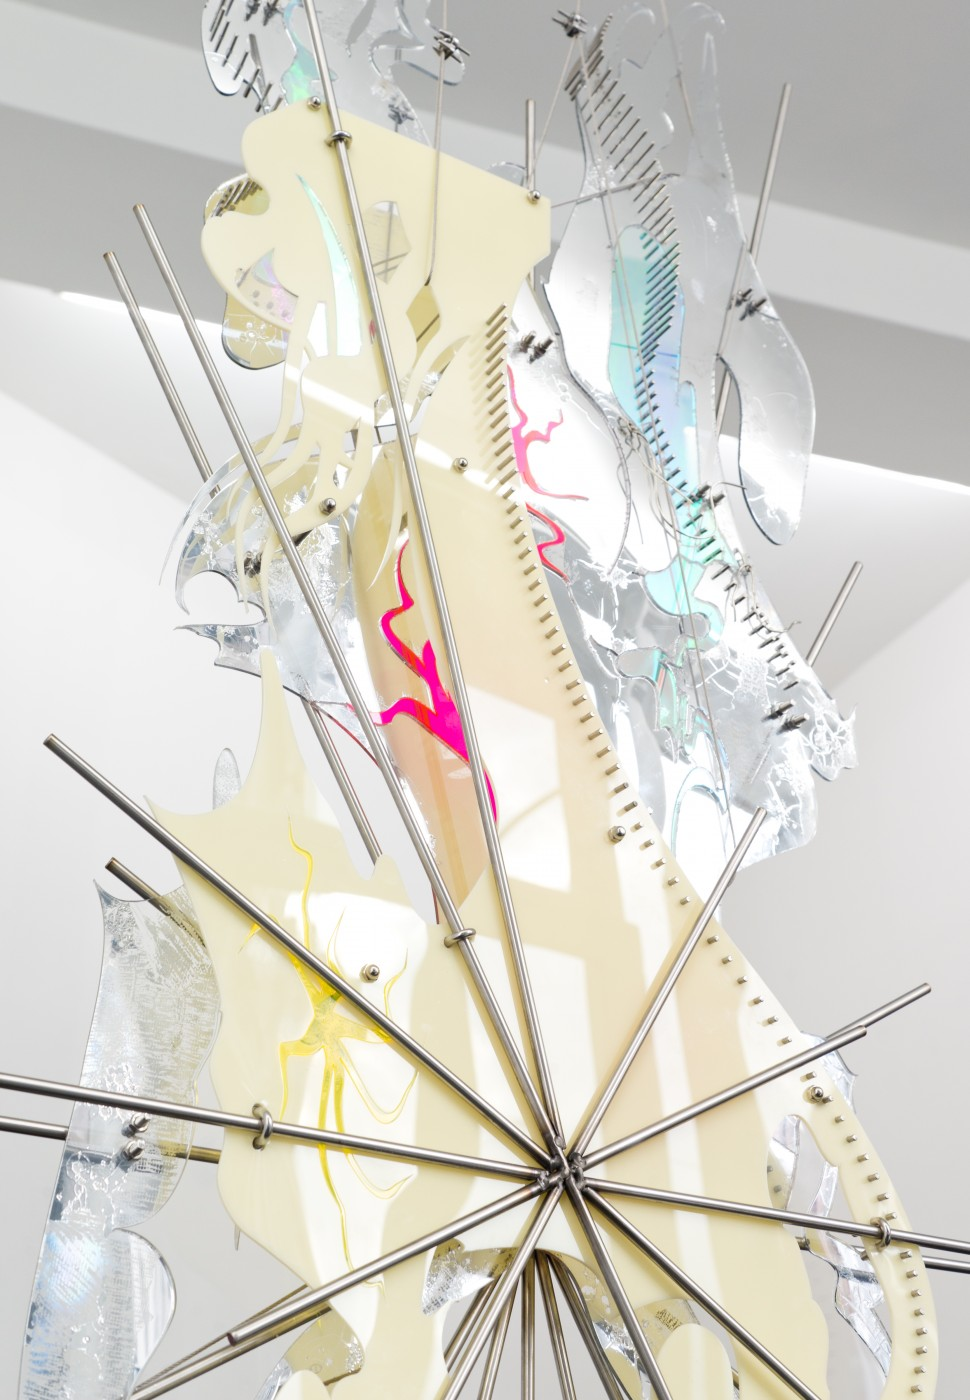 AFTERBURNER, THE ENEMY (LONG ARMED SUN) AND SKINSUIT AT THE CASTLE  Skinsuit at the Castle</I>, 2016 (detail) 